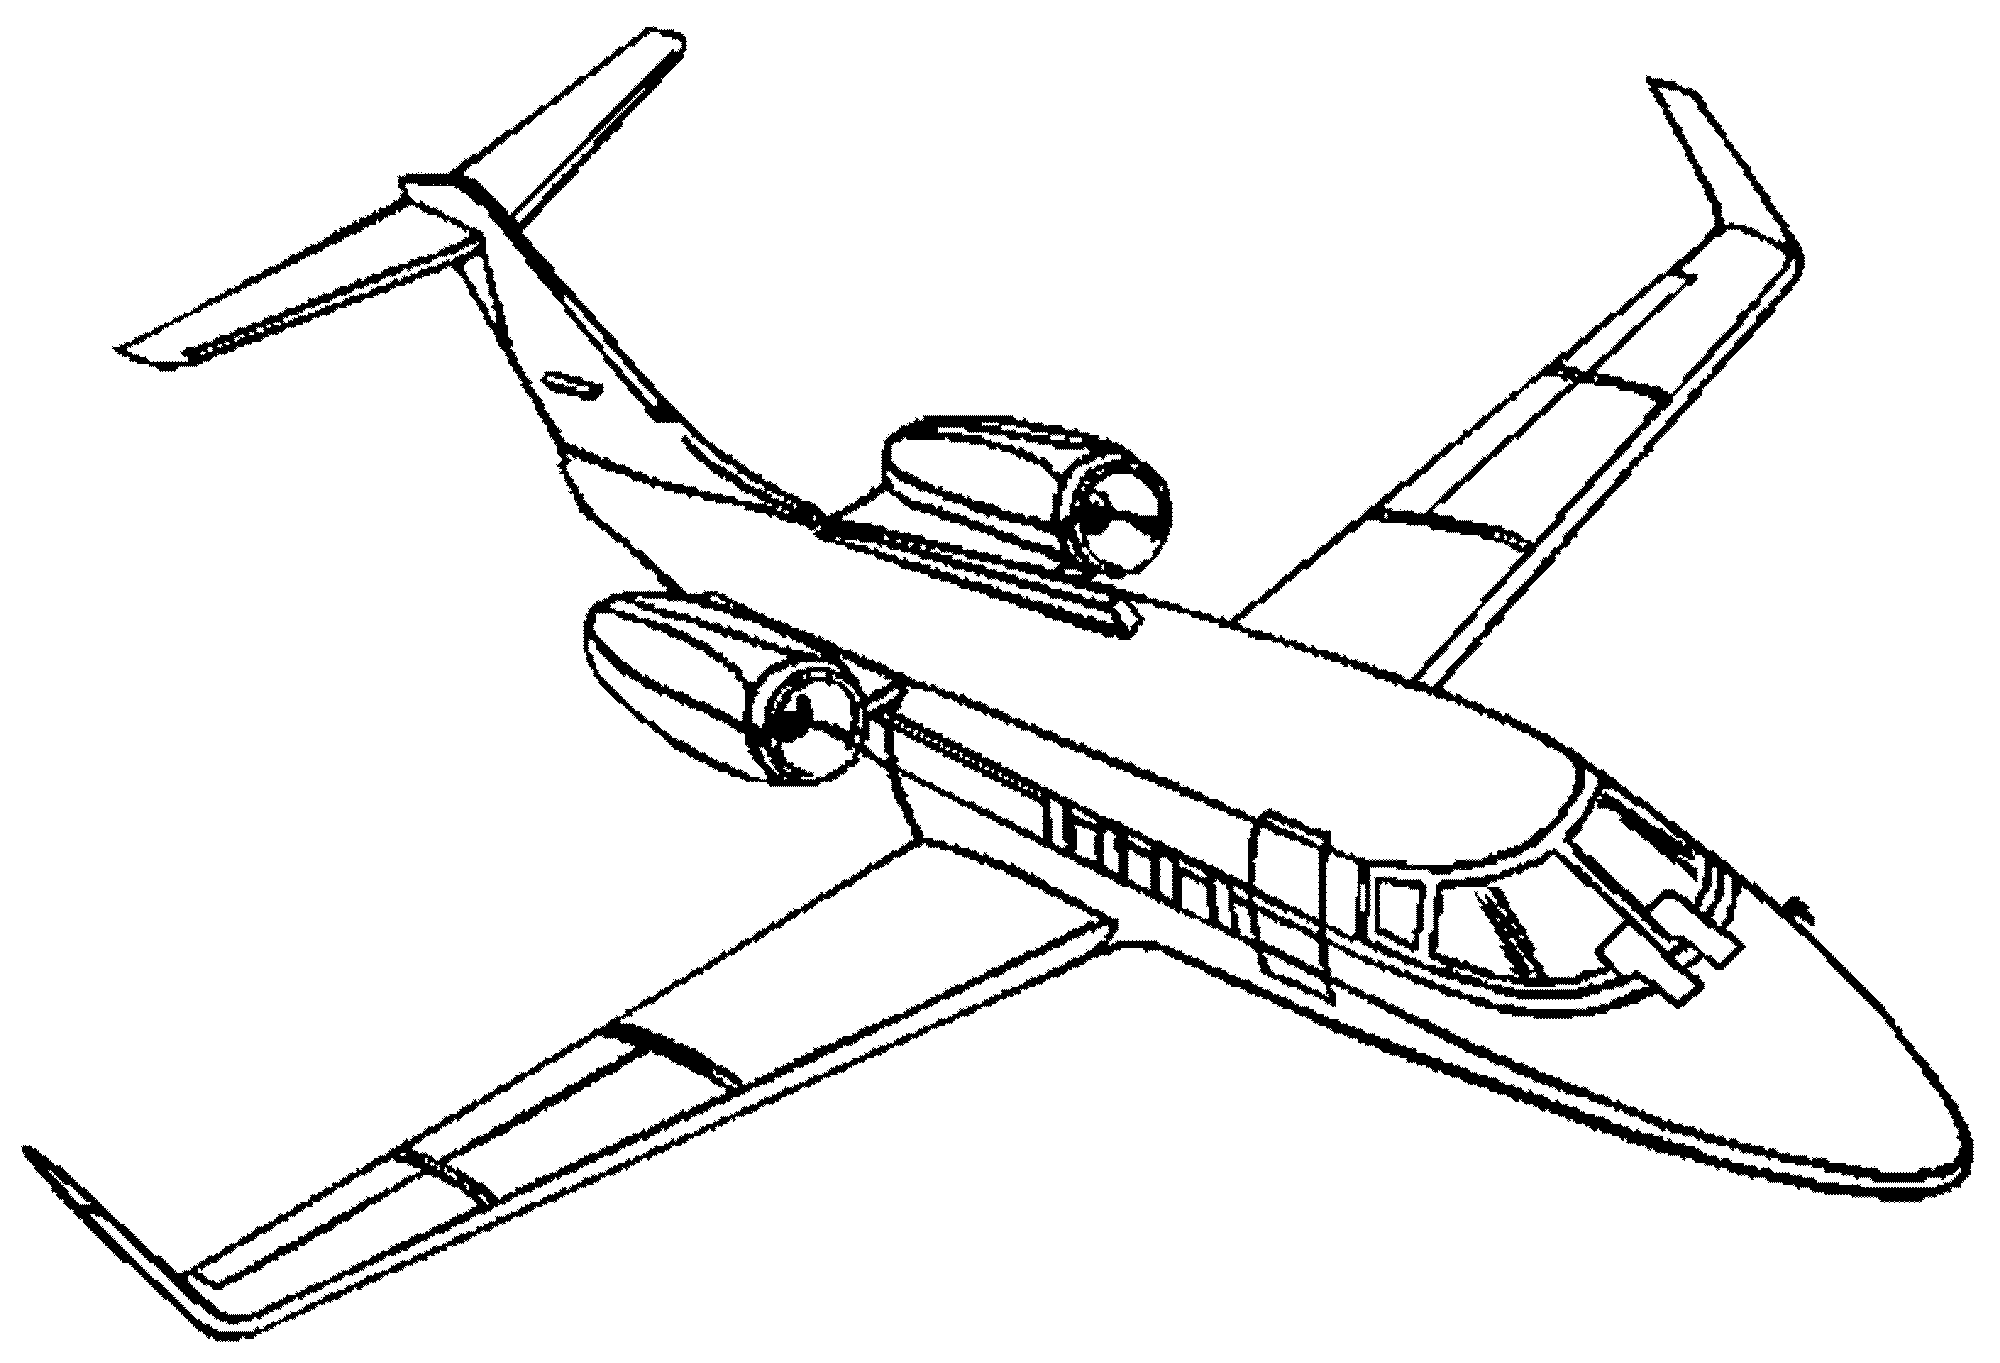 Drawing helicopters colouring. Print download the sophisticated